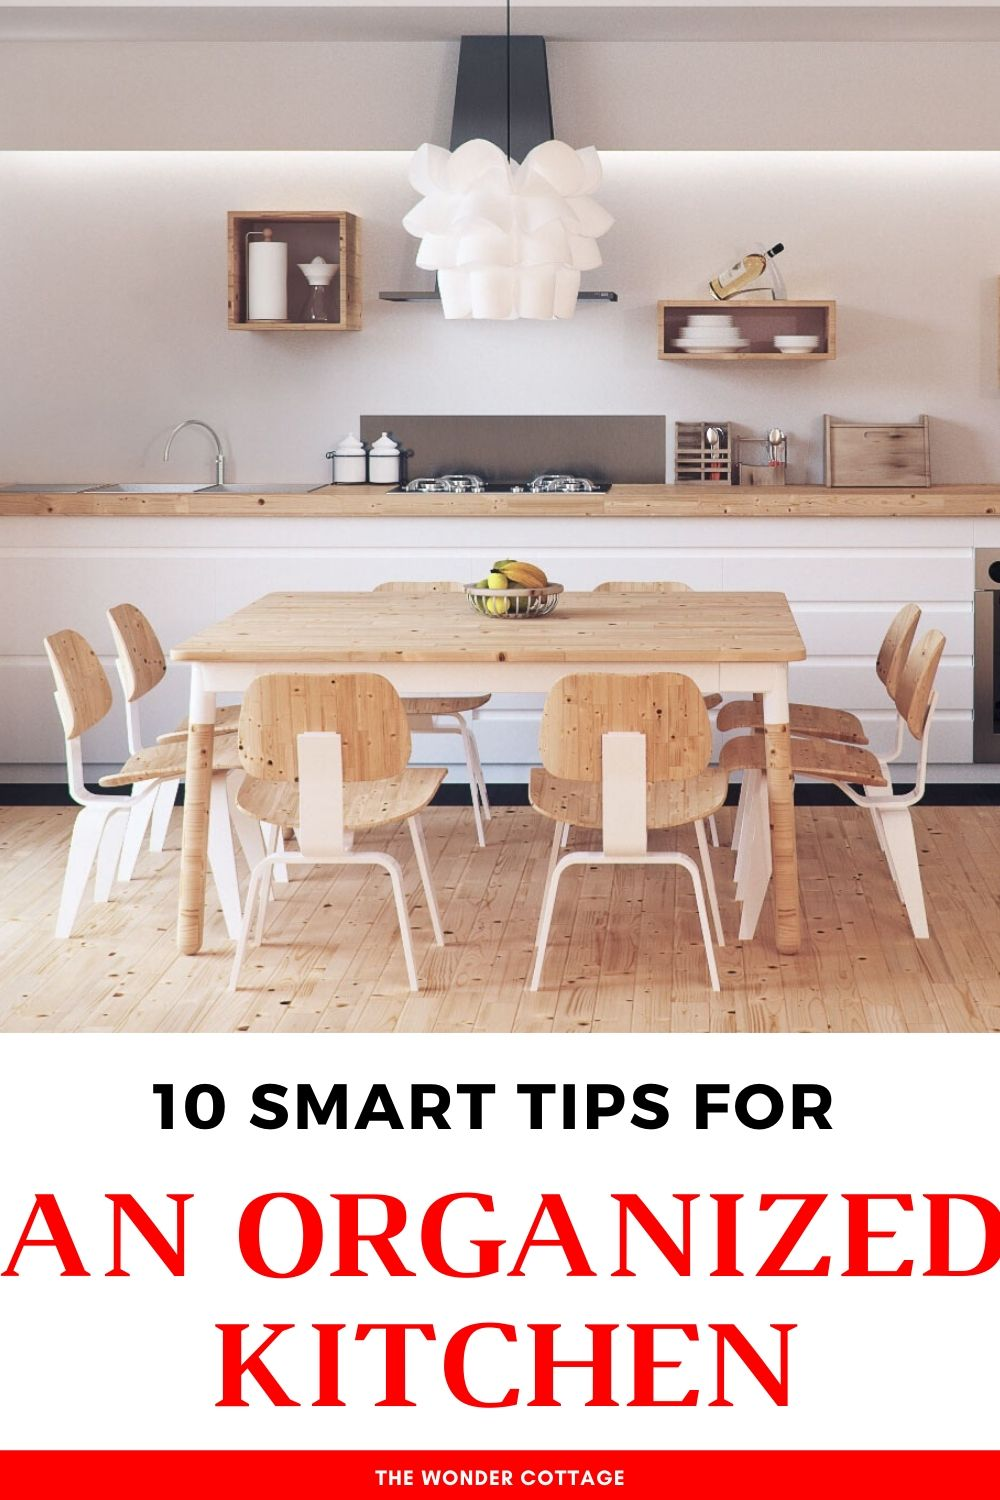 10 smart tips for an organized kitchen